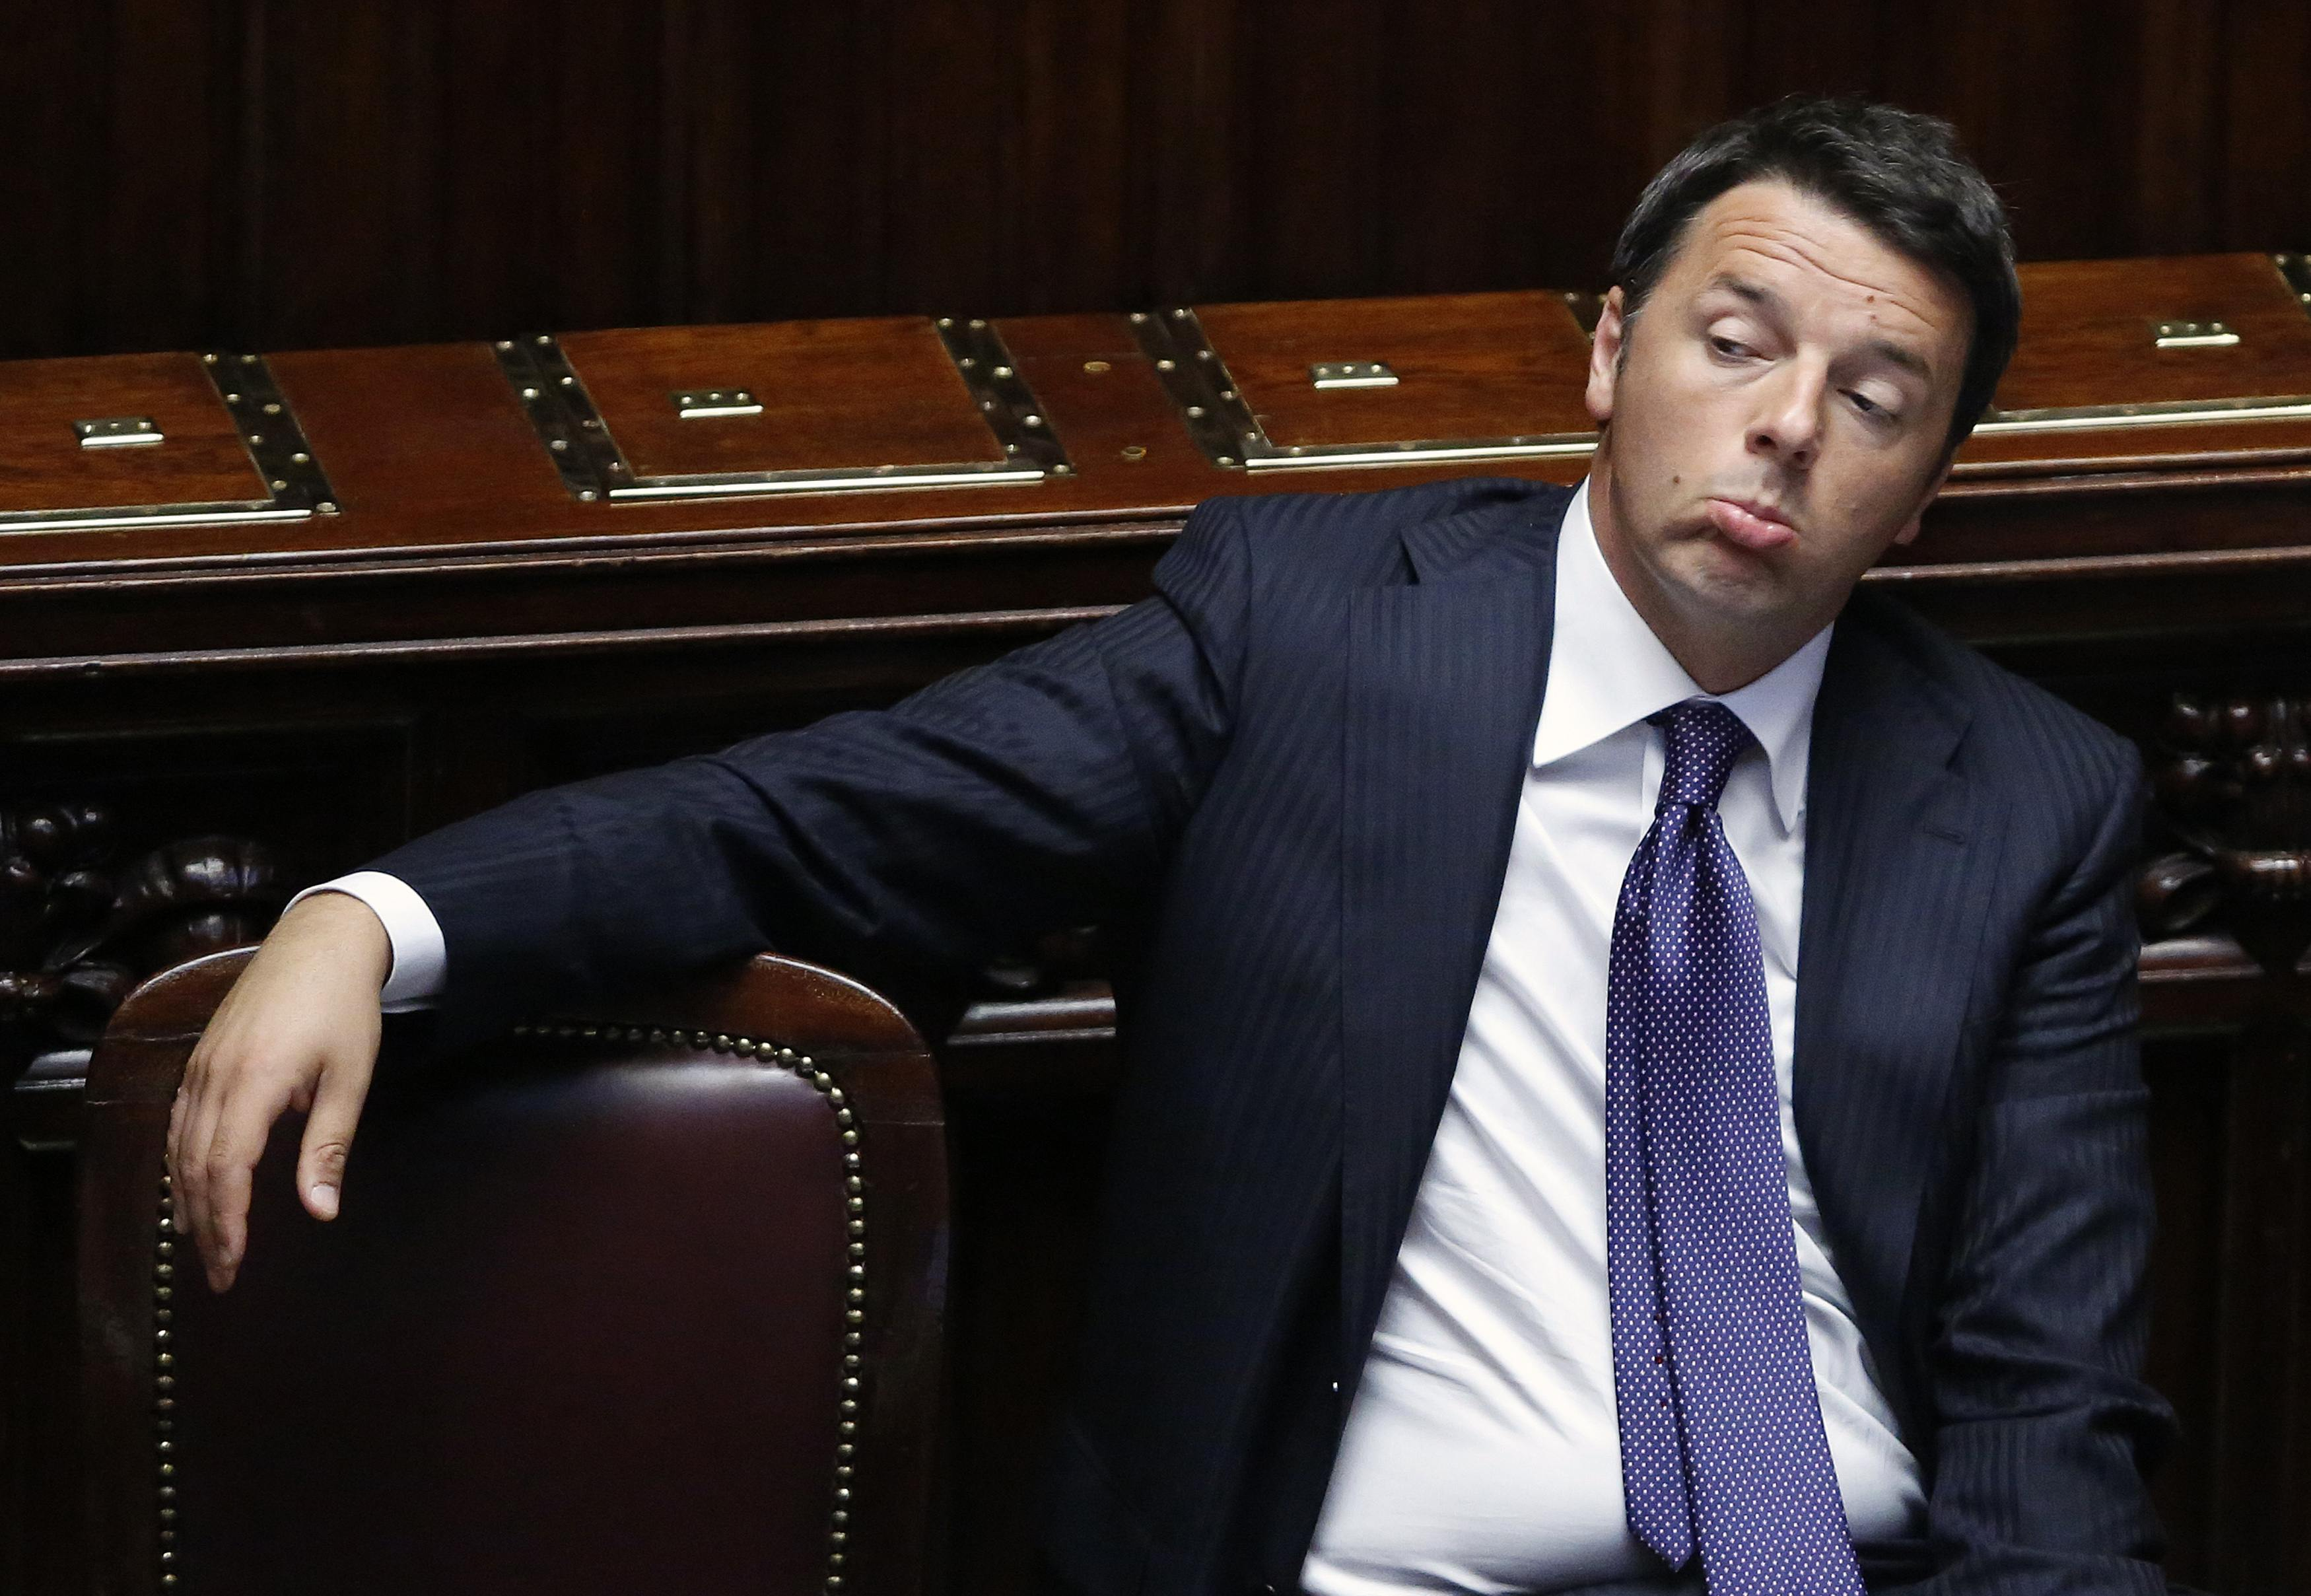 Italy's PM Renzi sits after delivering his speech at the Italian Parliament in Rome